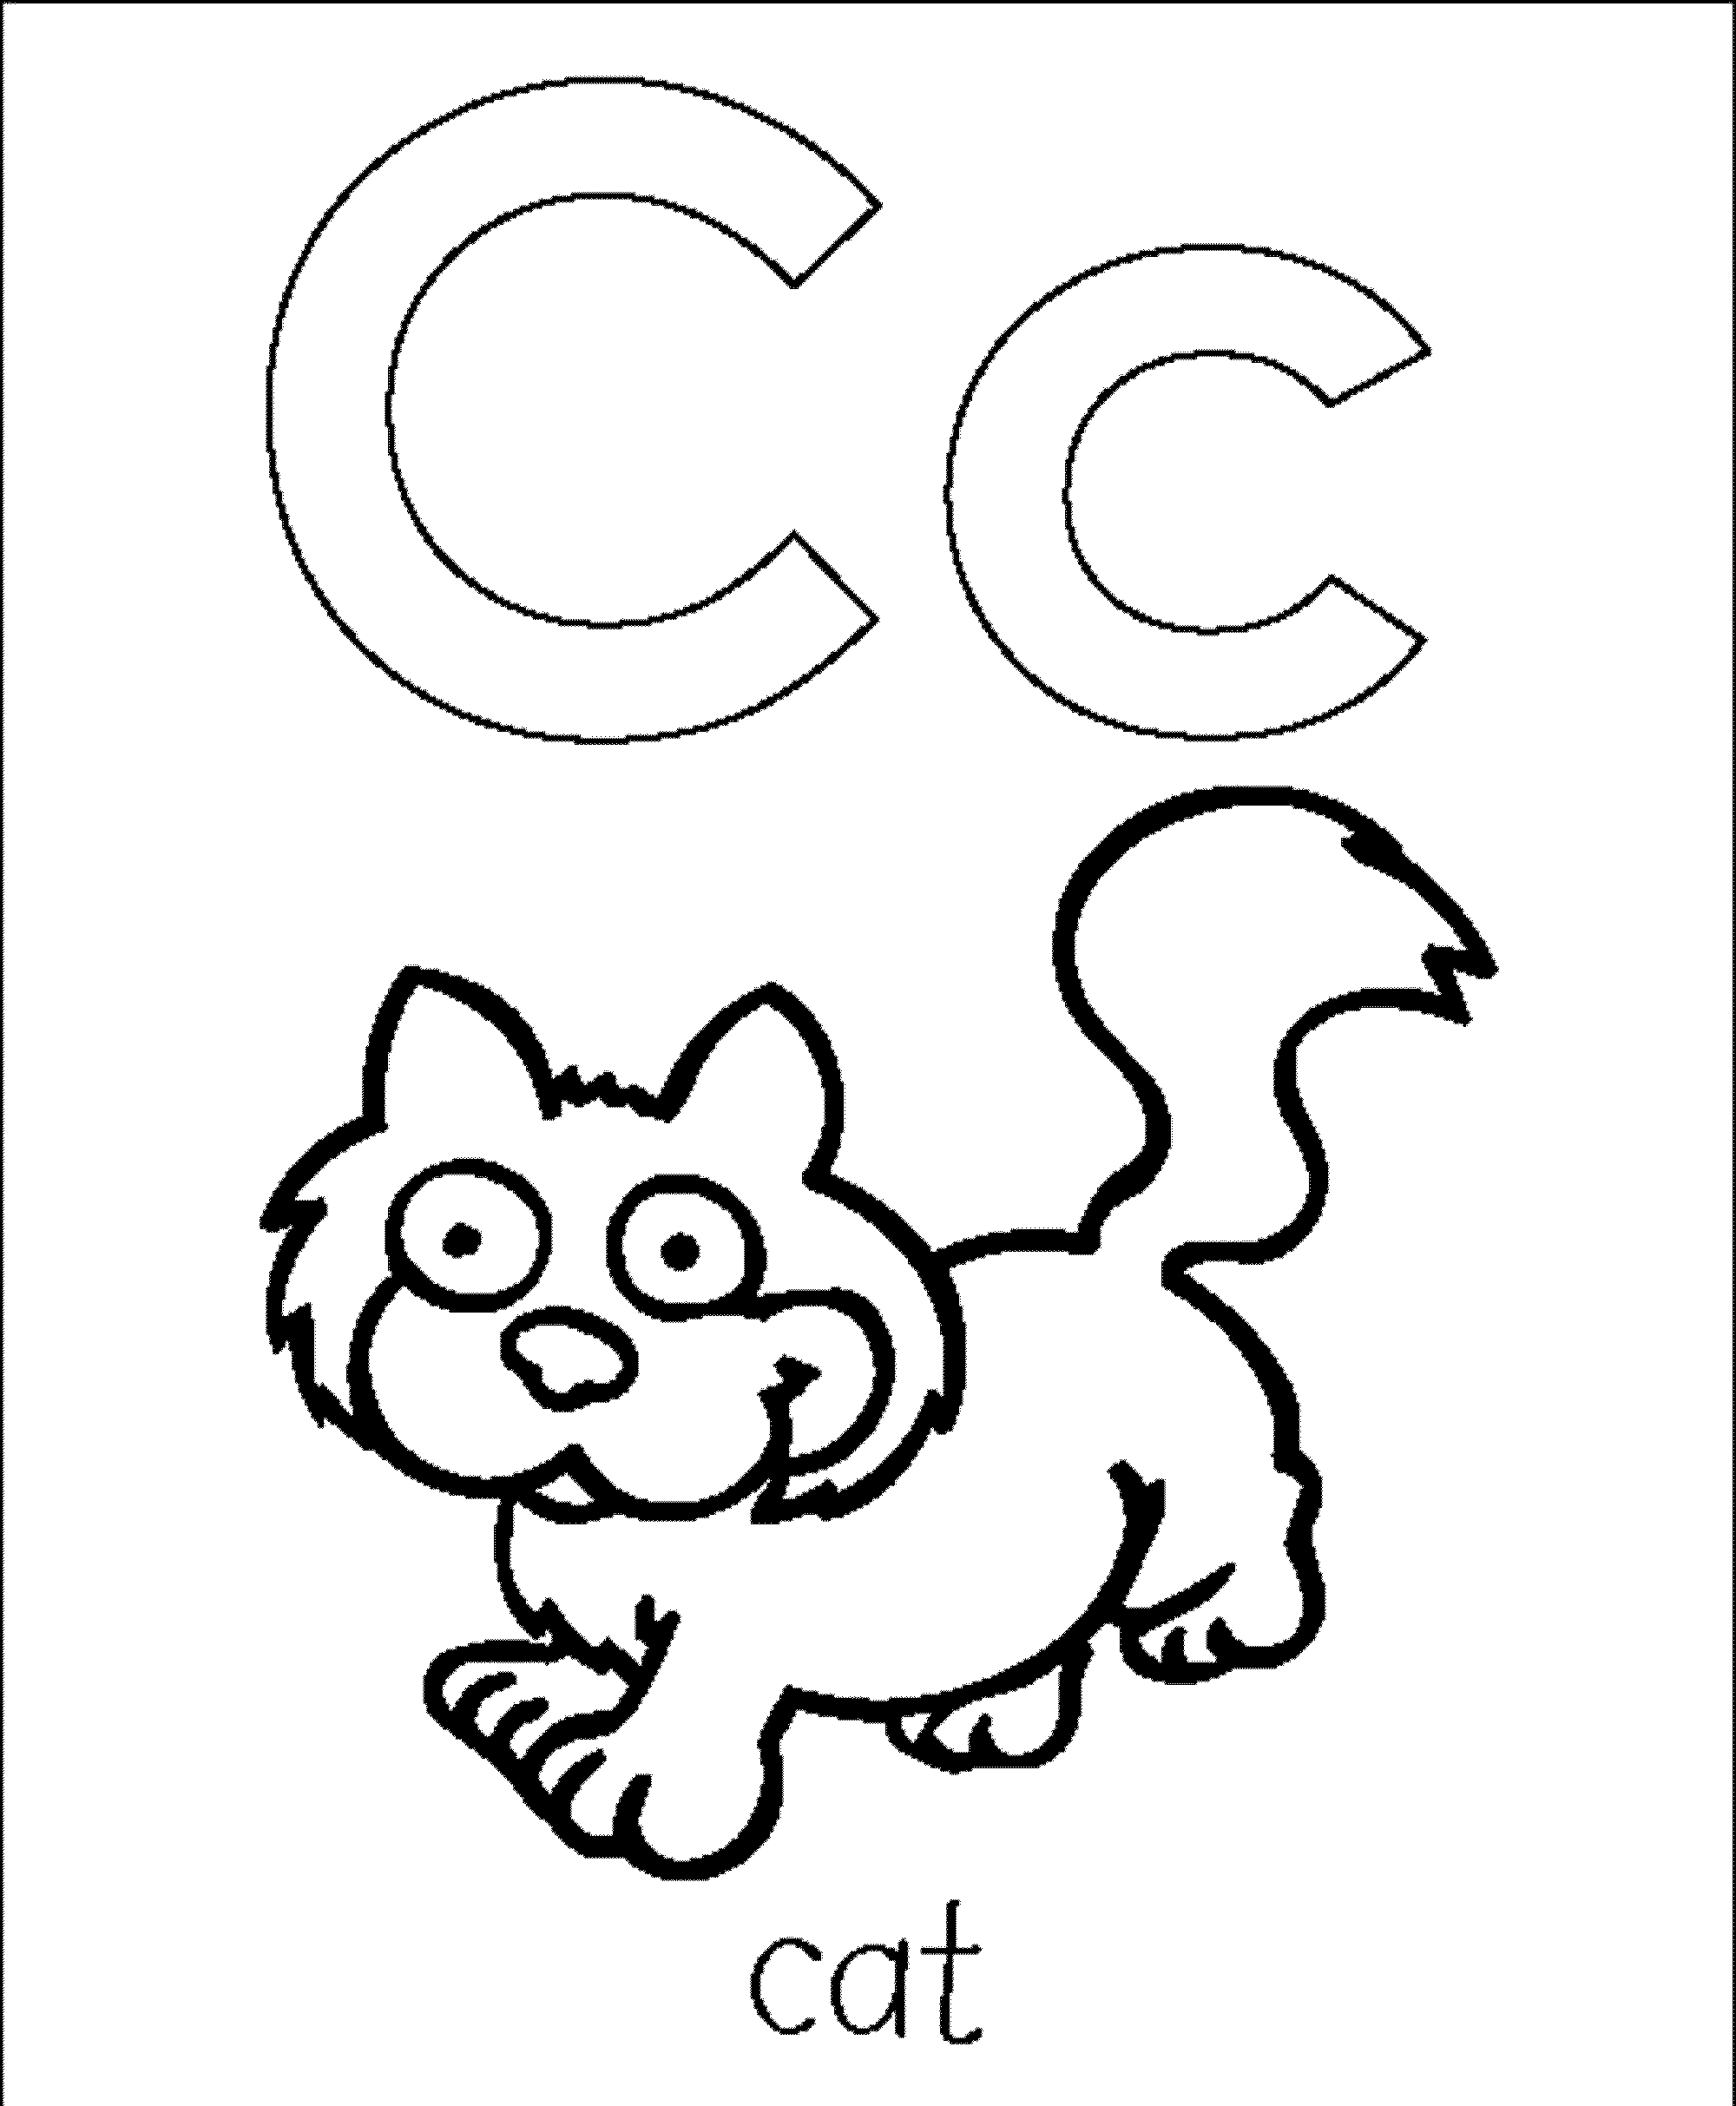 c for coloring printable alphabet c coloring pages coloringpagebookcom coloring for c